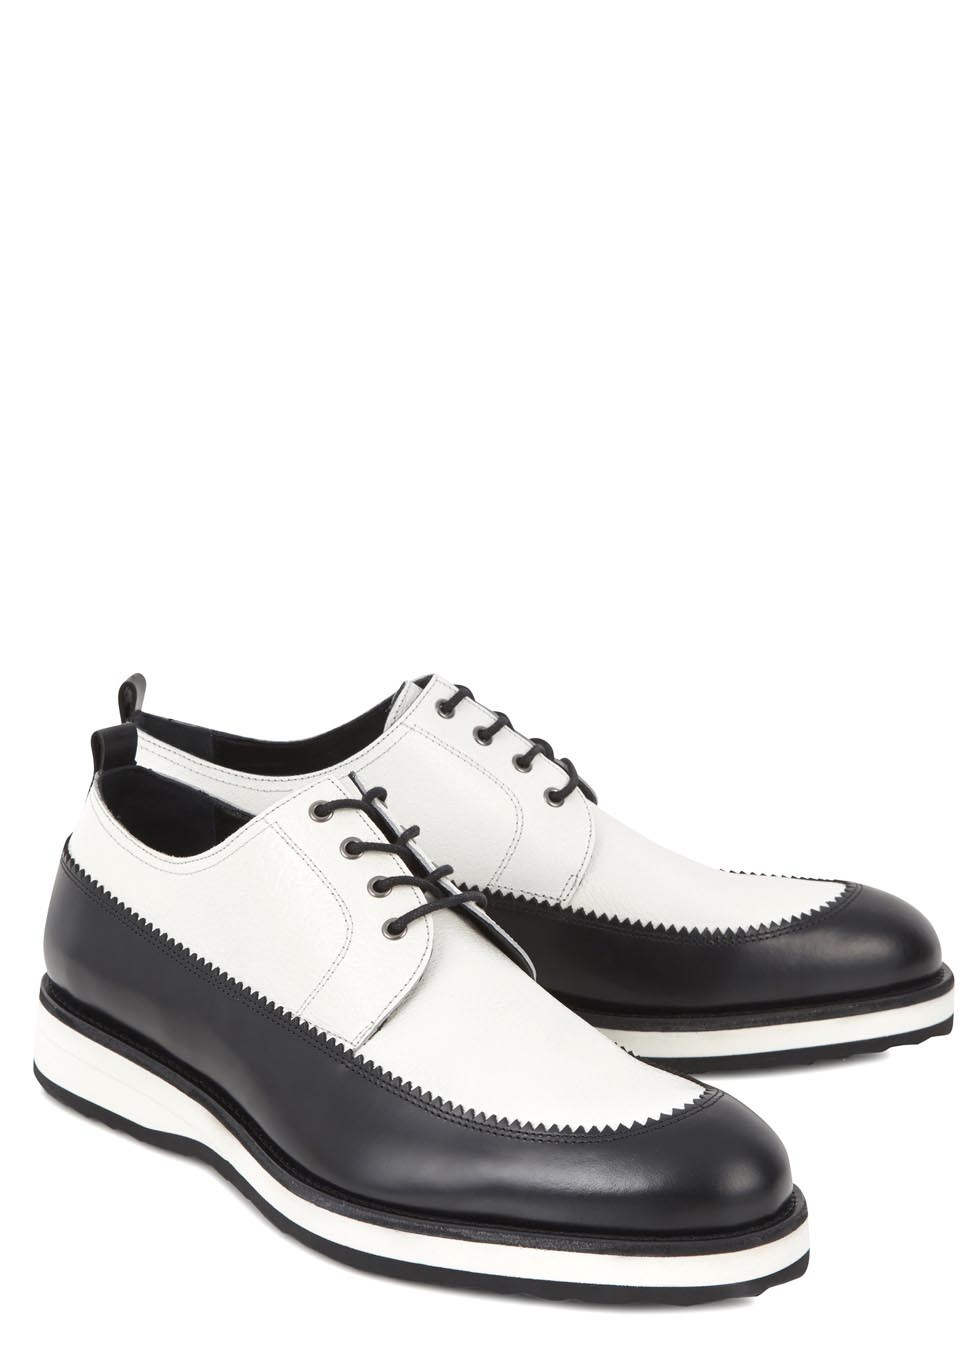 pierre hardy mens hairy calf print derby shoes in white for men lyst. Black Bedroom Furniture Sets. Home Design Ideas